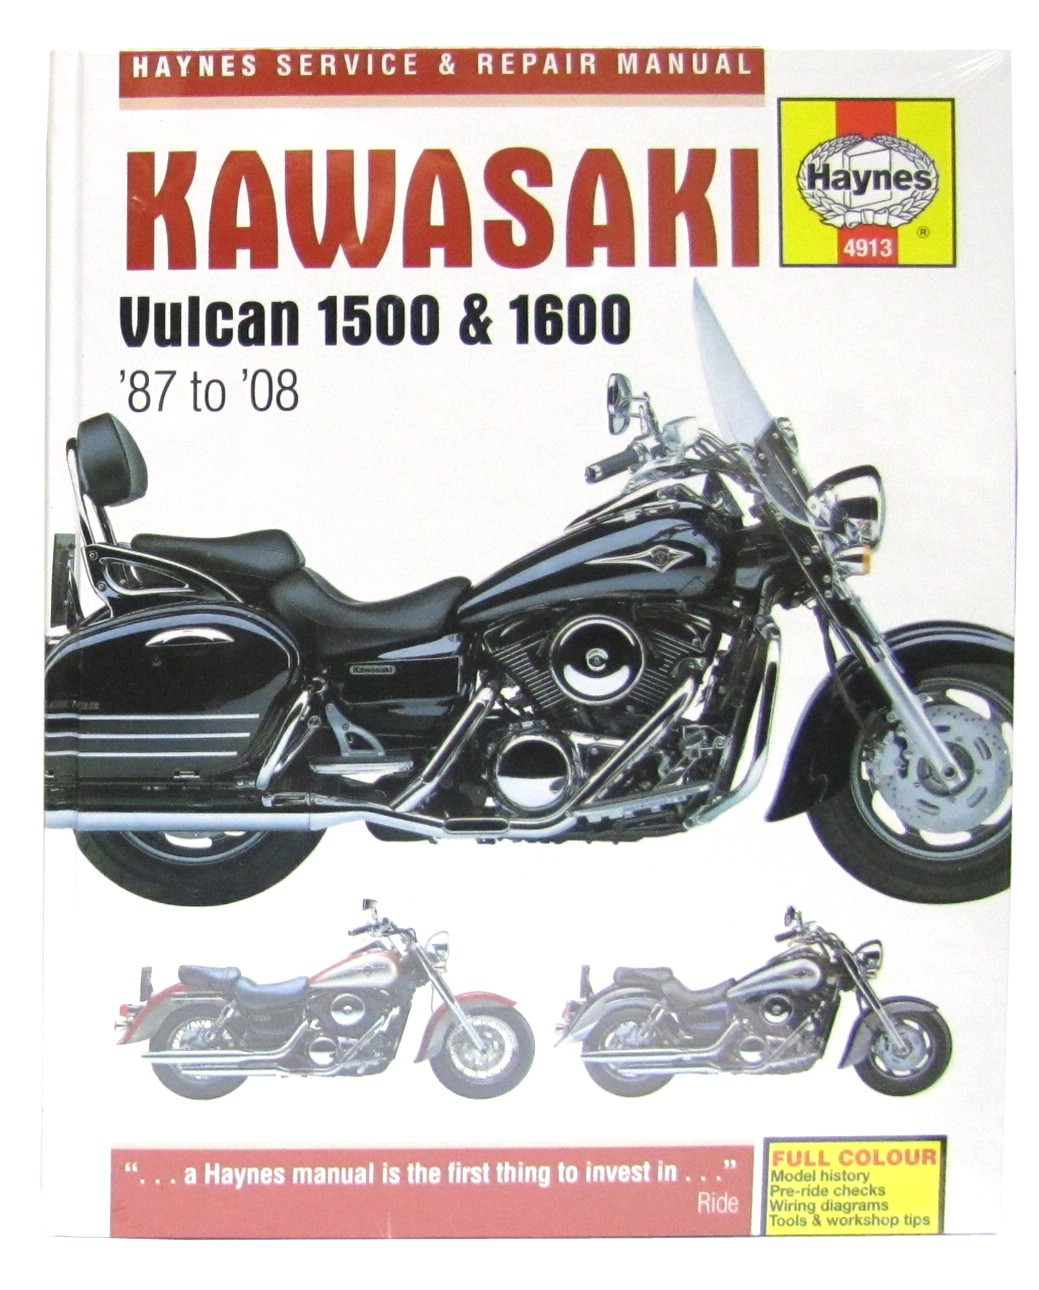 haynes manual kawasaki vulcan 1500 1600 1700 87 08 each ebay rh ebay co uk  1996 Kawasaki Vulcan 1500 Specs 1996 Kawasaki Vulcan 1500 Review